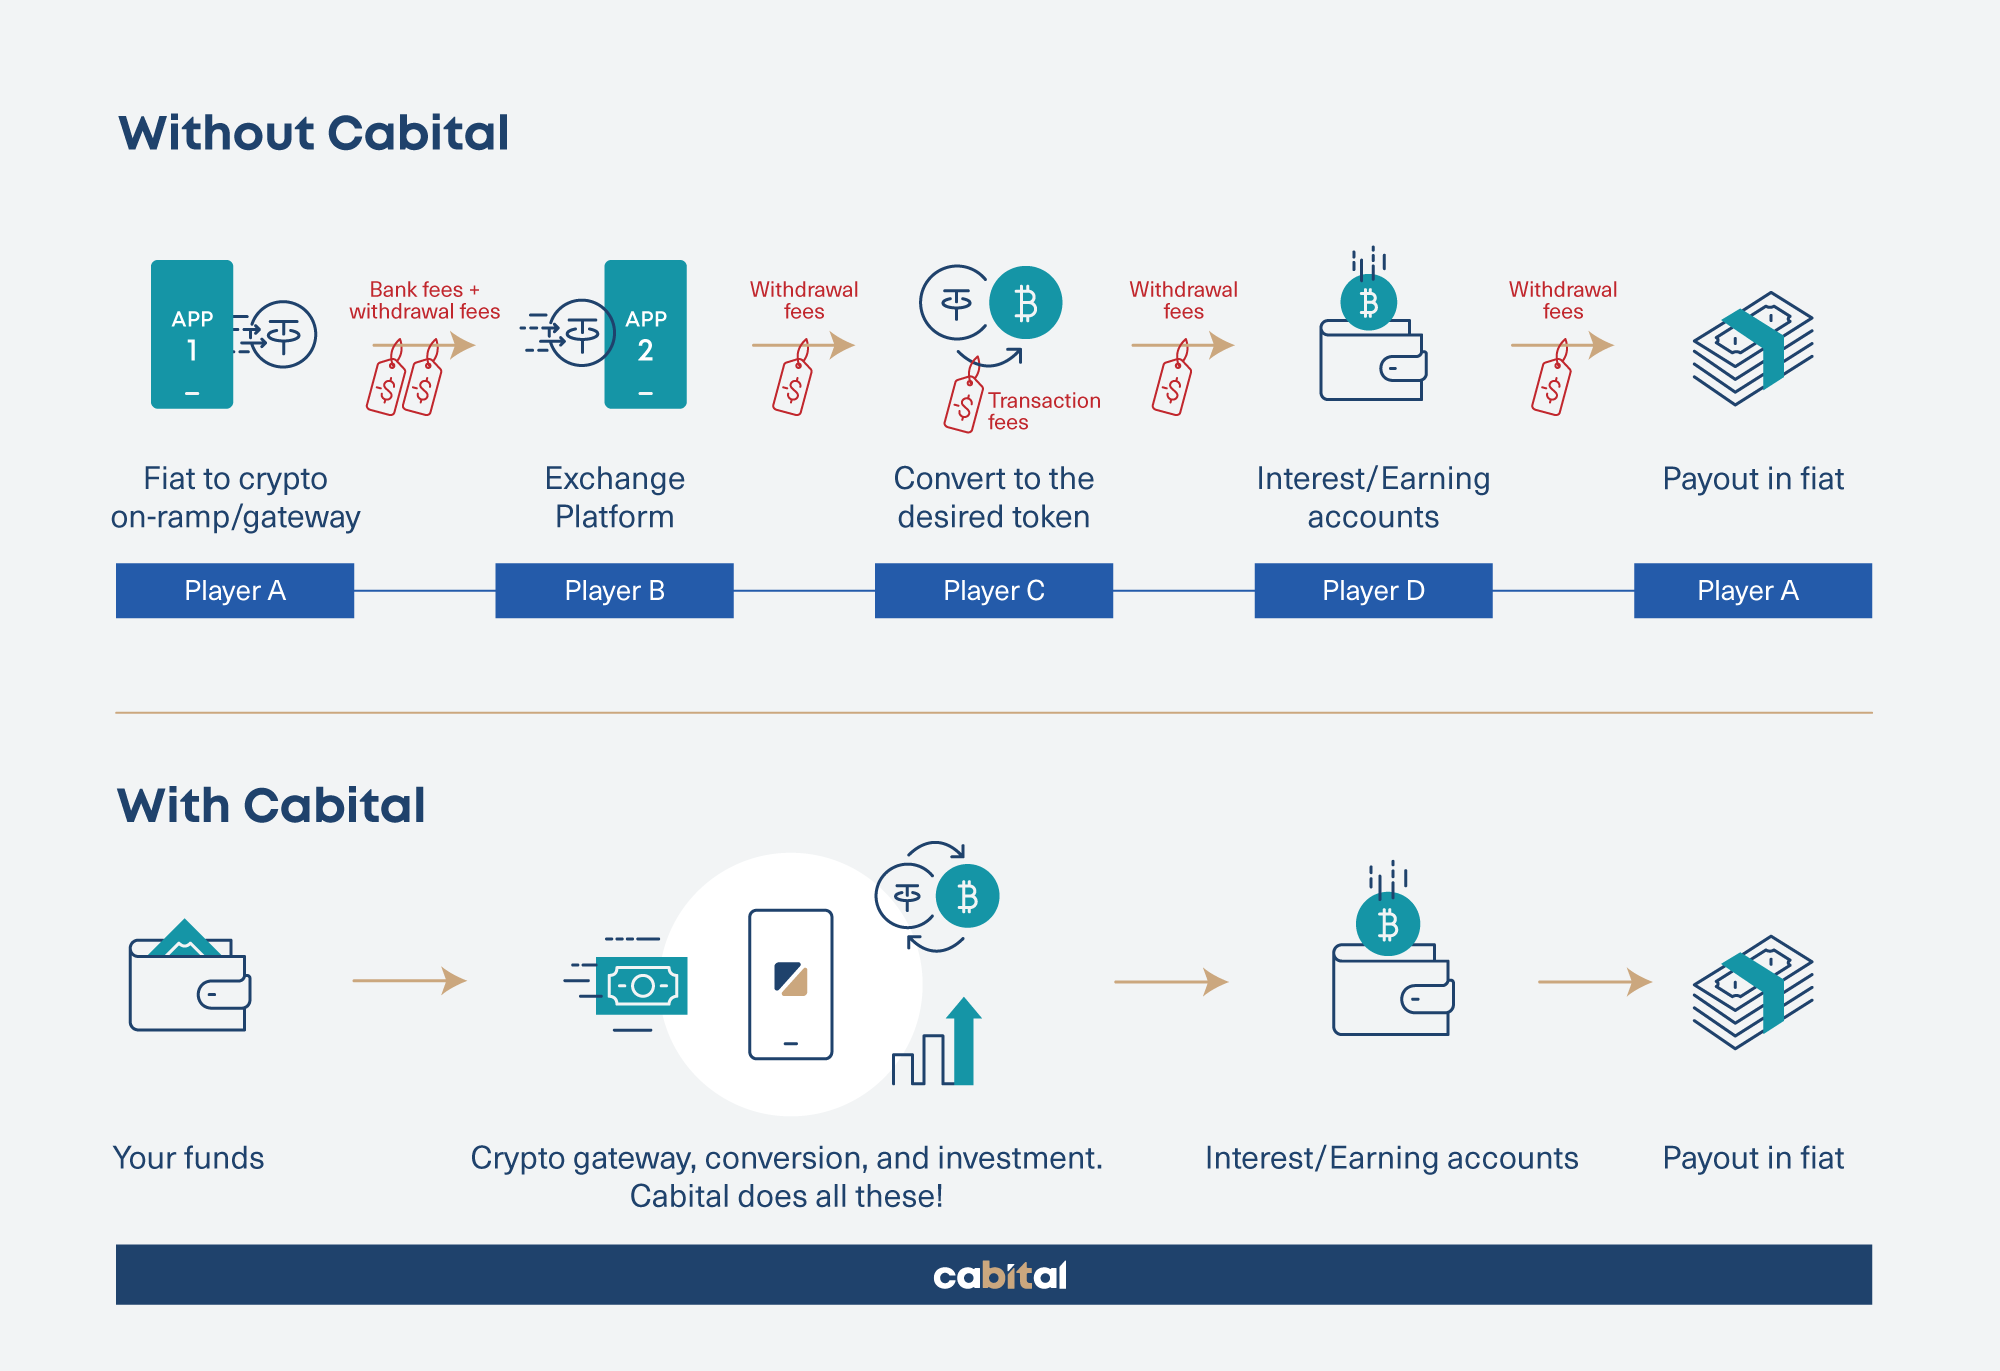 Comparison user journey with & without Cabital